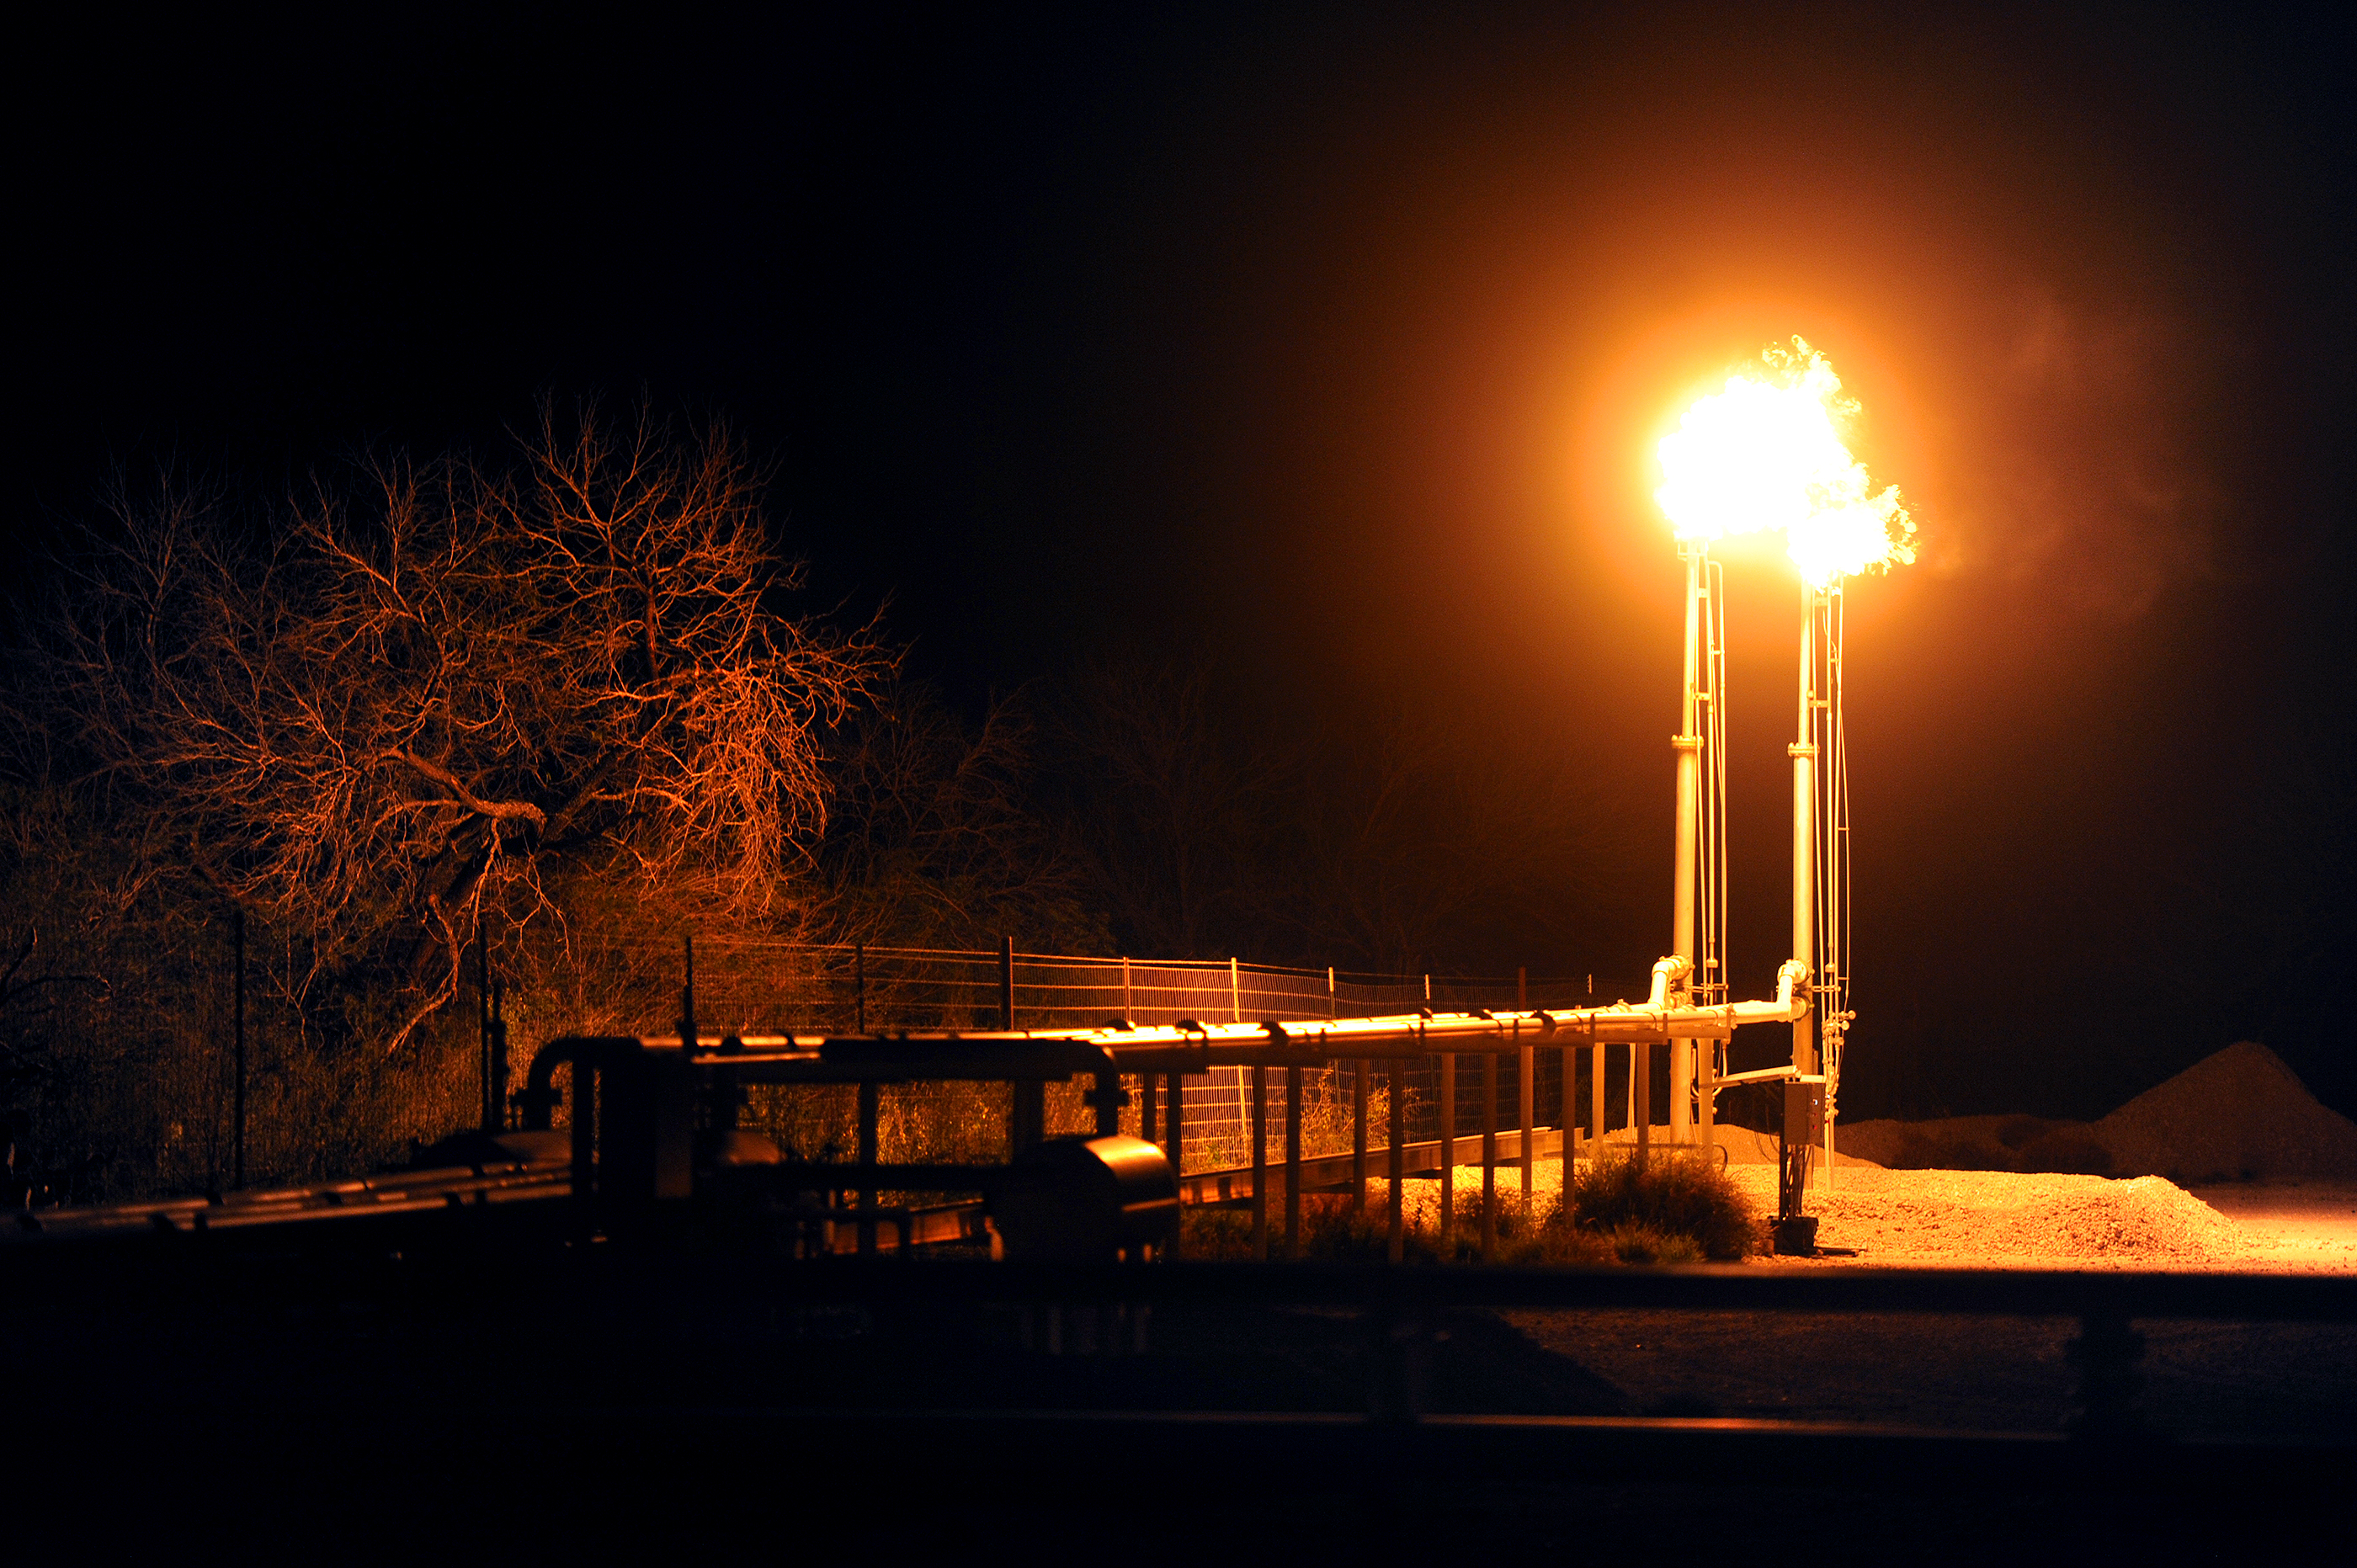 Flames light up the landscape at a fracking operation near Tilden, Texas.